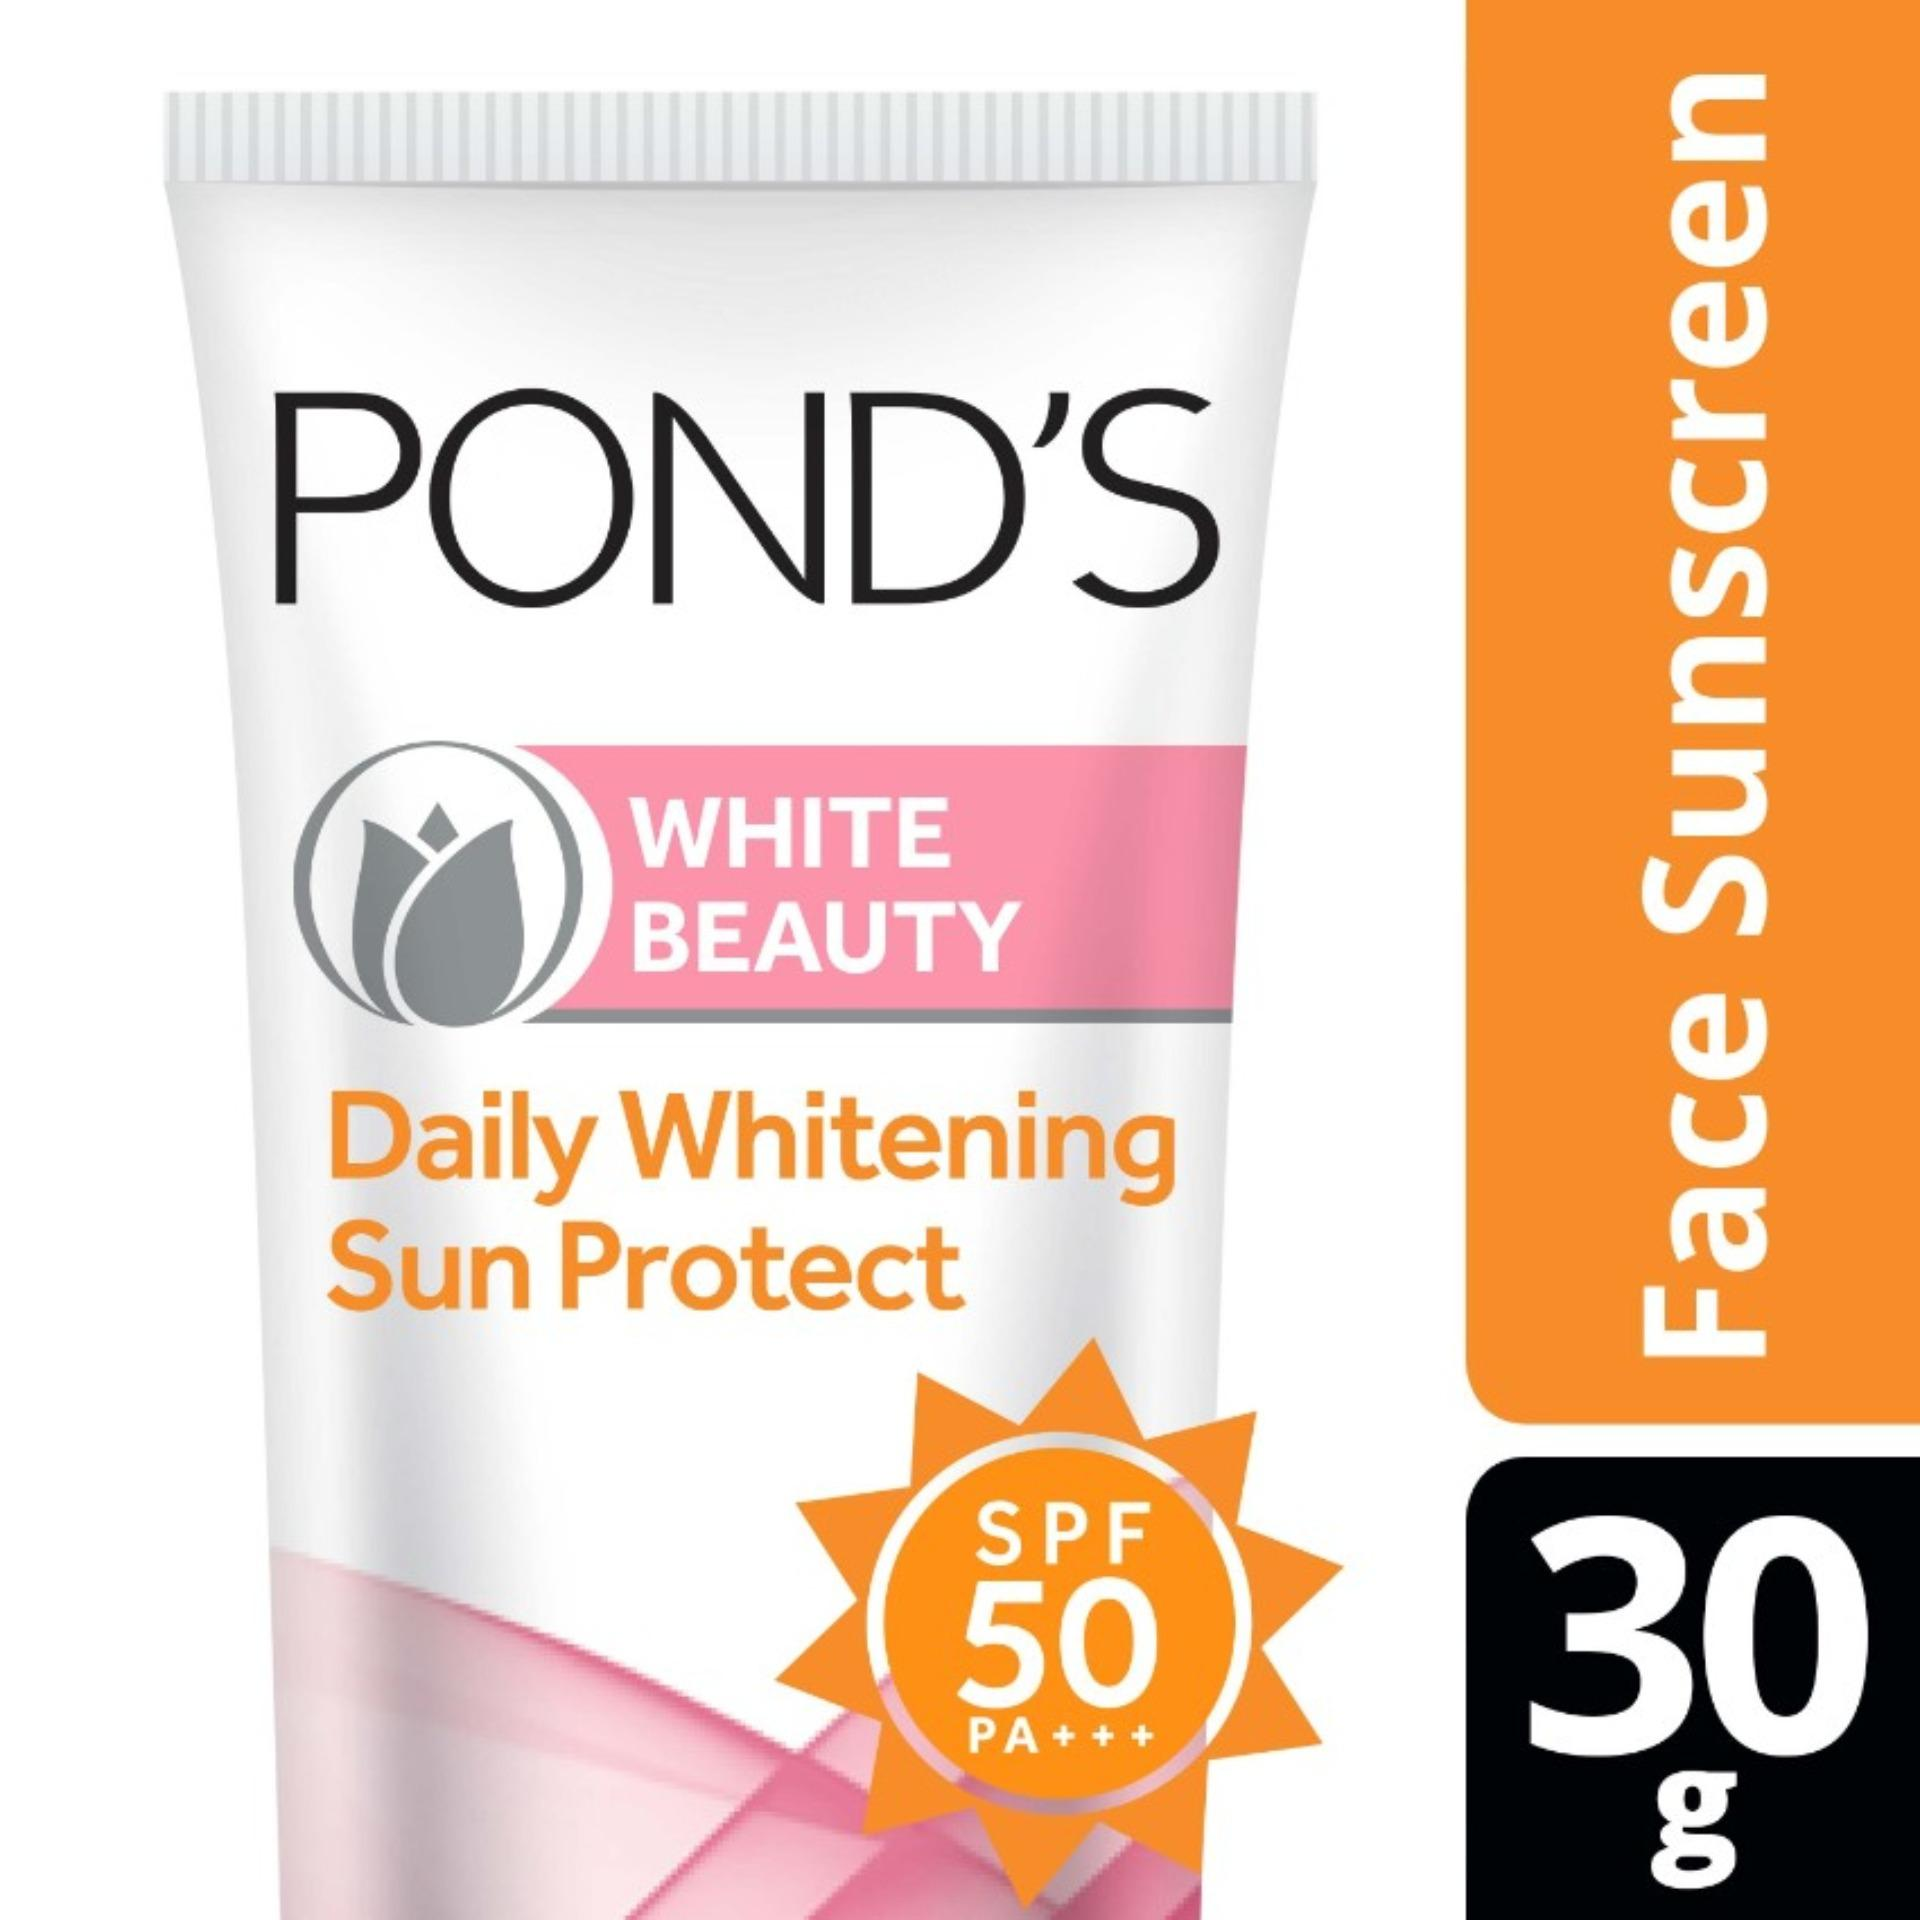 Ponds Philippines Price List Facial Wash Foam Scrub Pond S Flawless White Brightening Night Cream 10g Beauty Daily Whitening Sun Protect Spf 50 30g